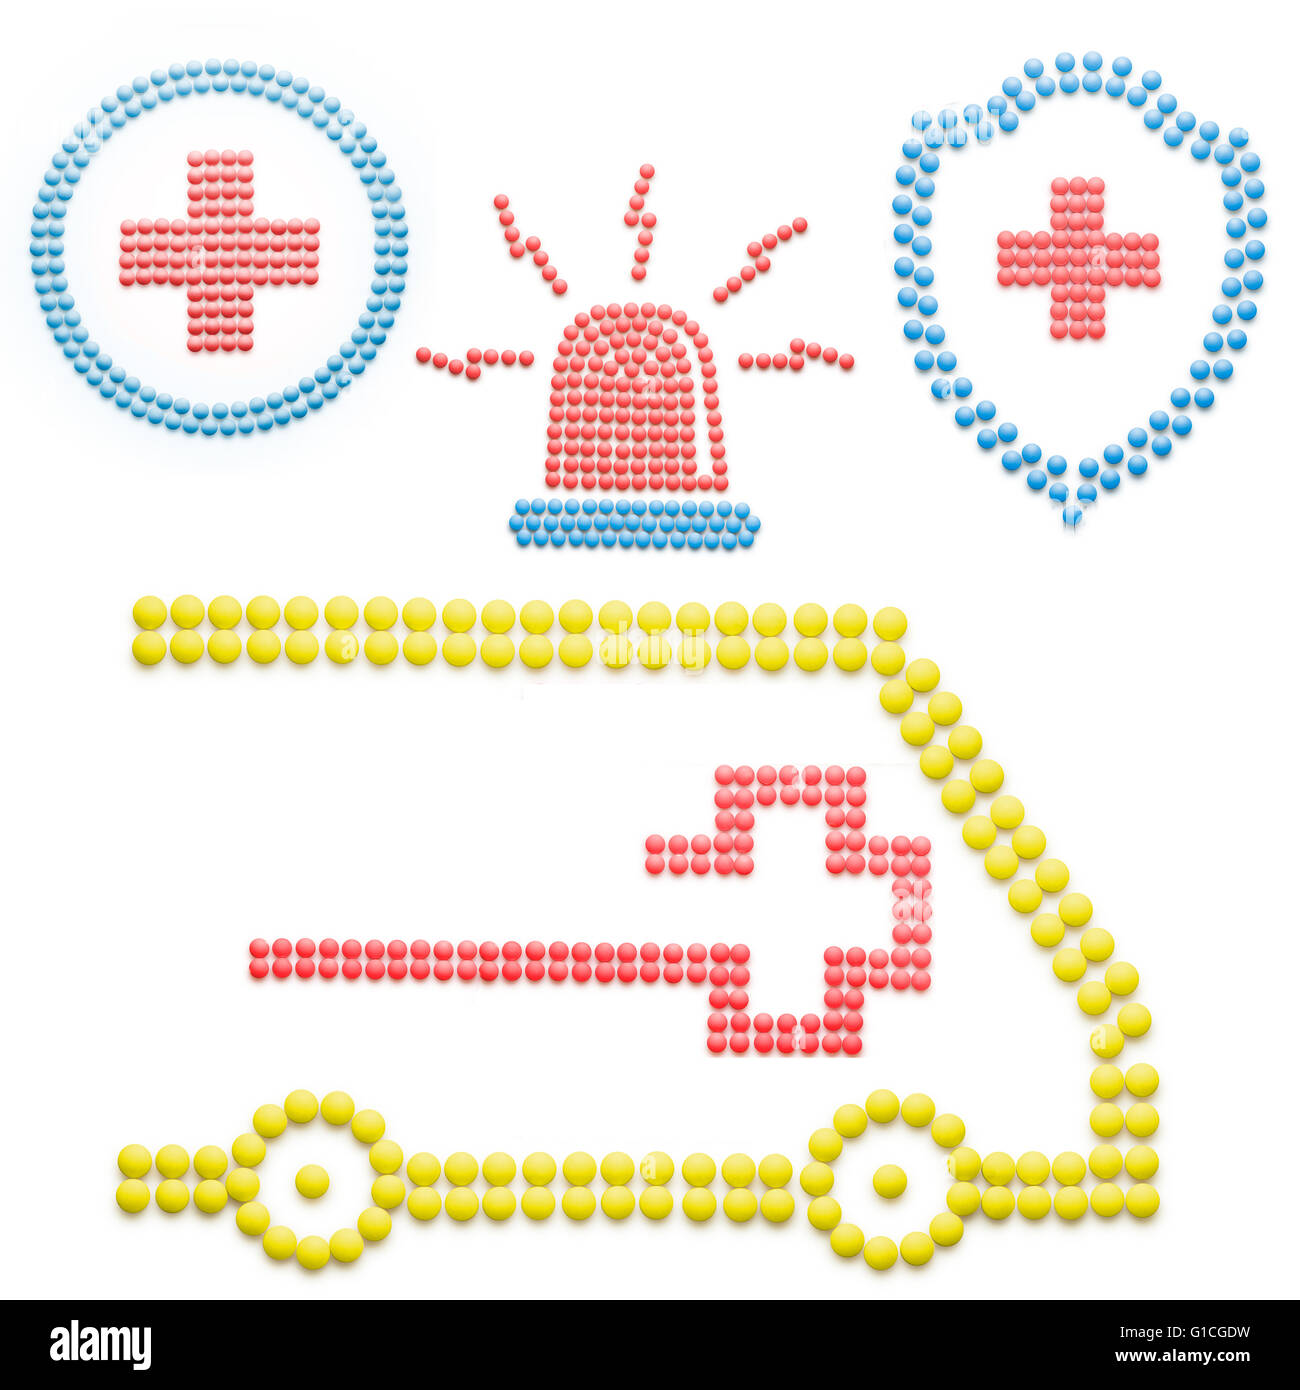 Creative medicine and healthcare concept made of drugs and pills, emergency ambulance car with siren isolated on - Stock Image